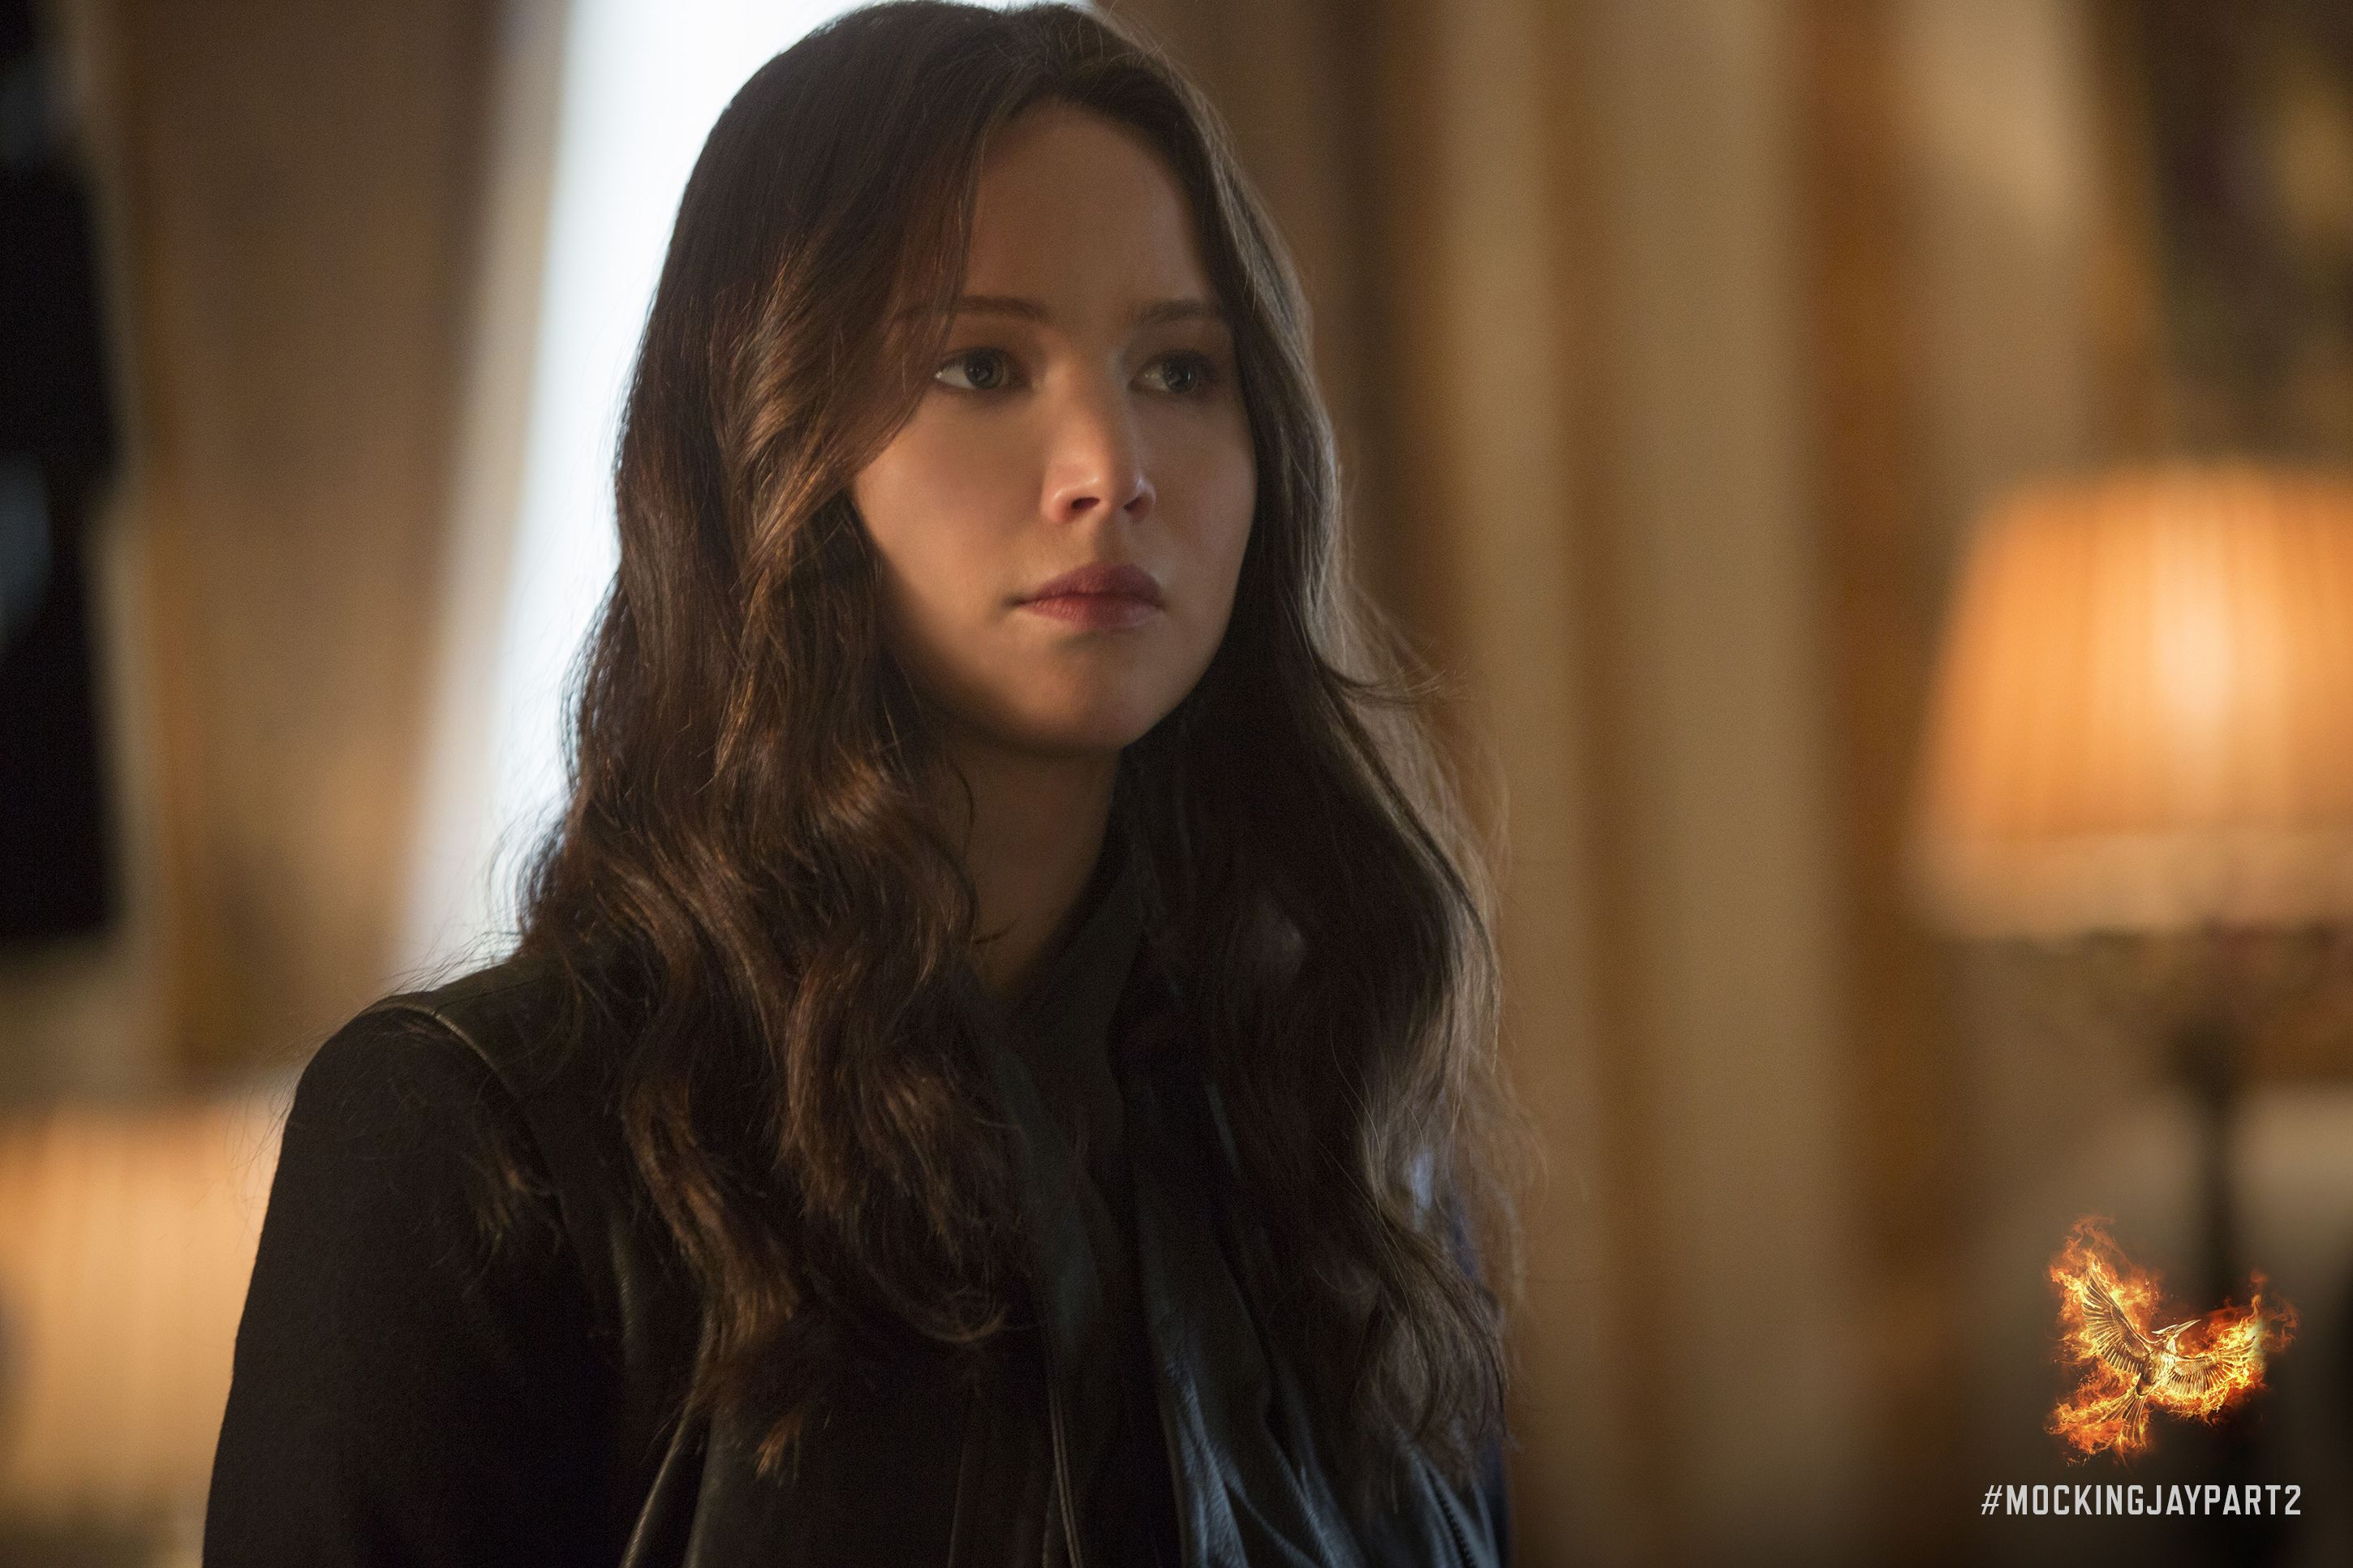 """I can't believe how normal they've made me look on the outside…"" - Katniss Everdeen, #MockingjayPart2"